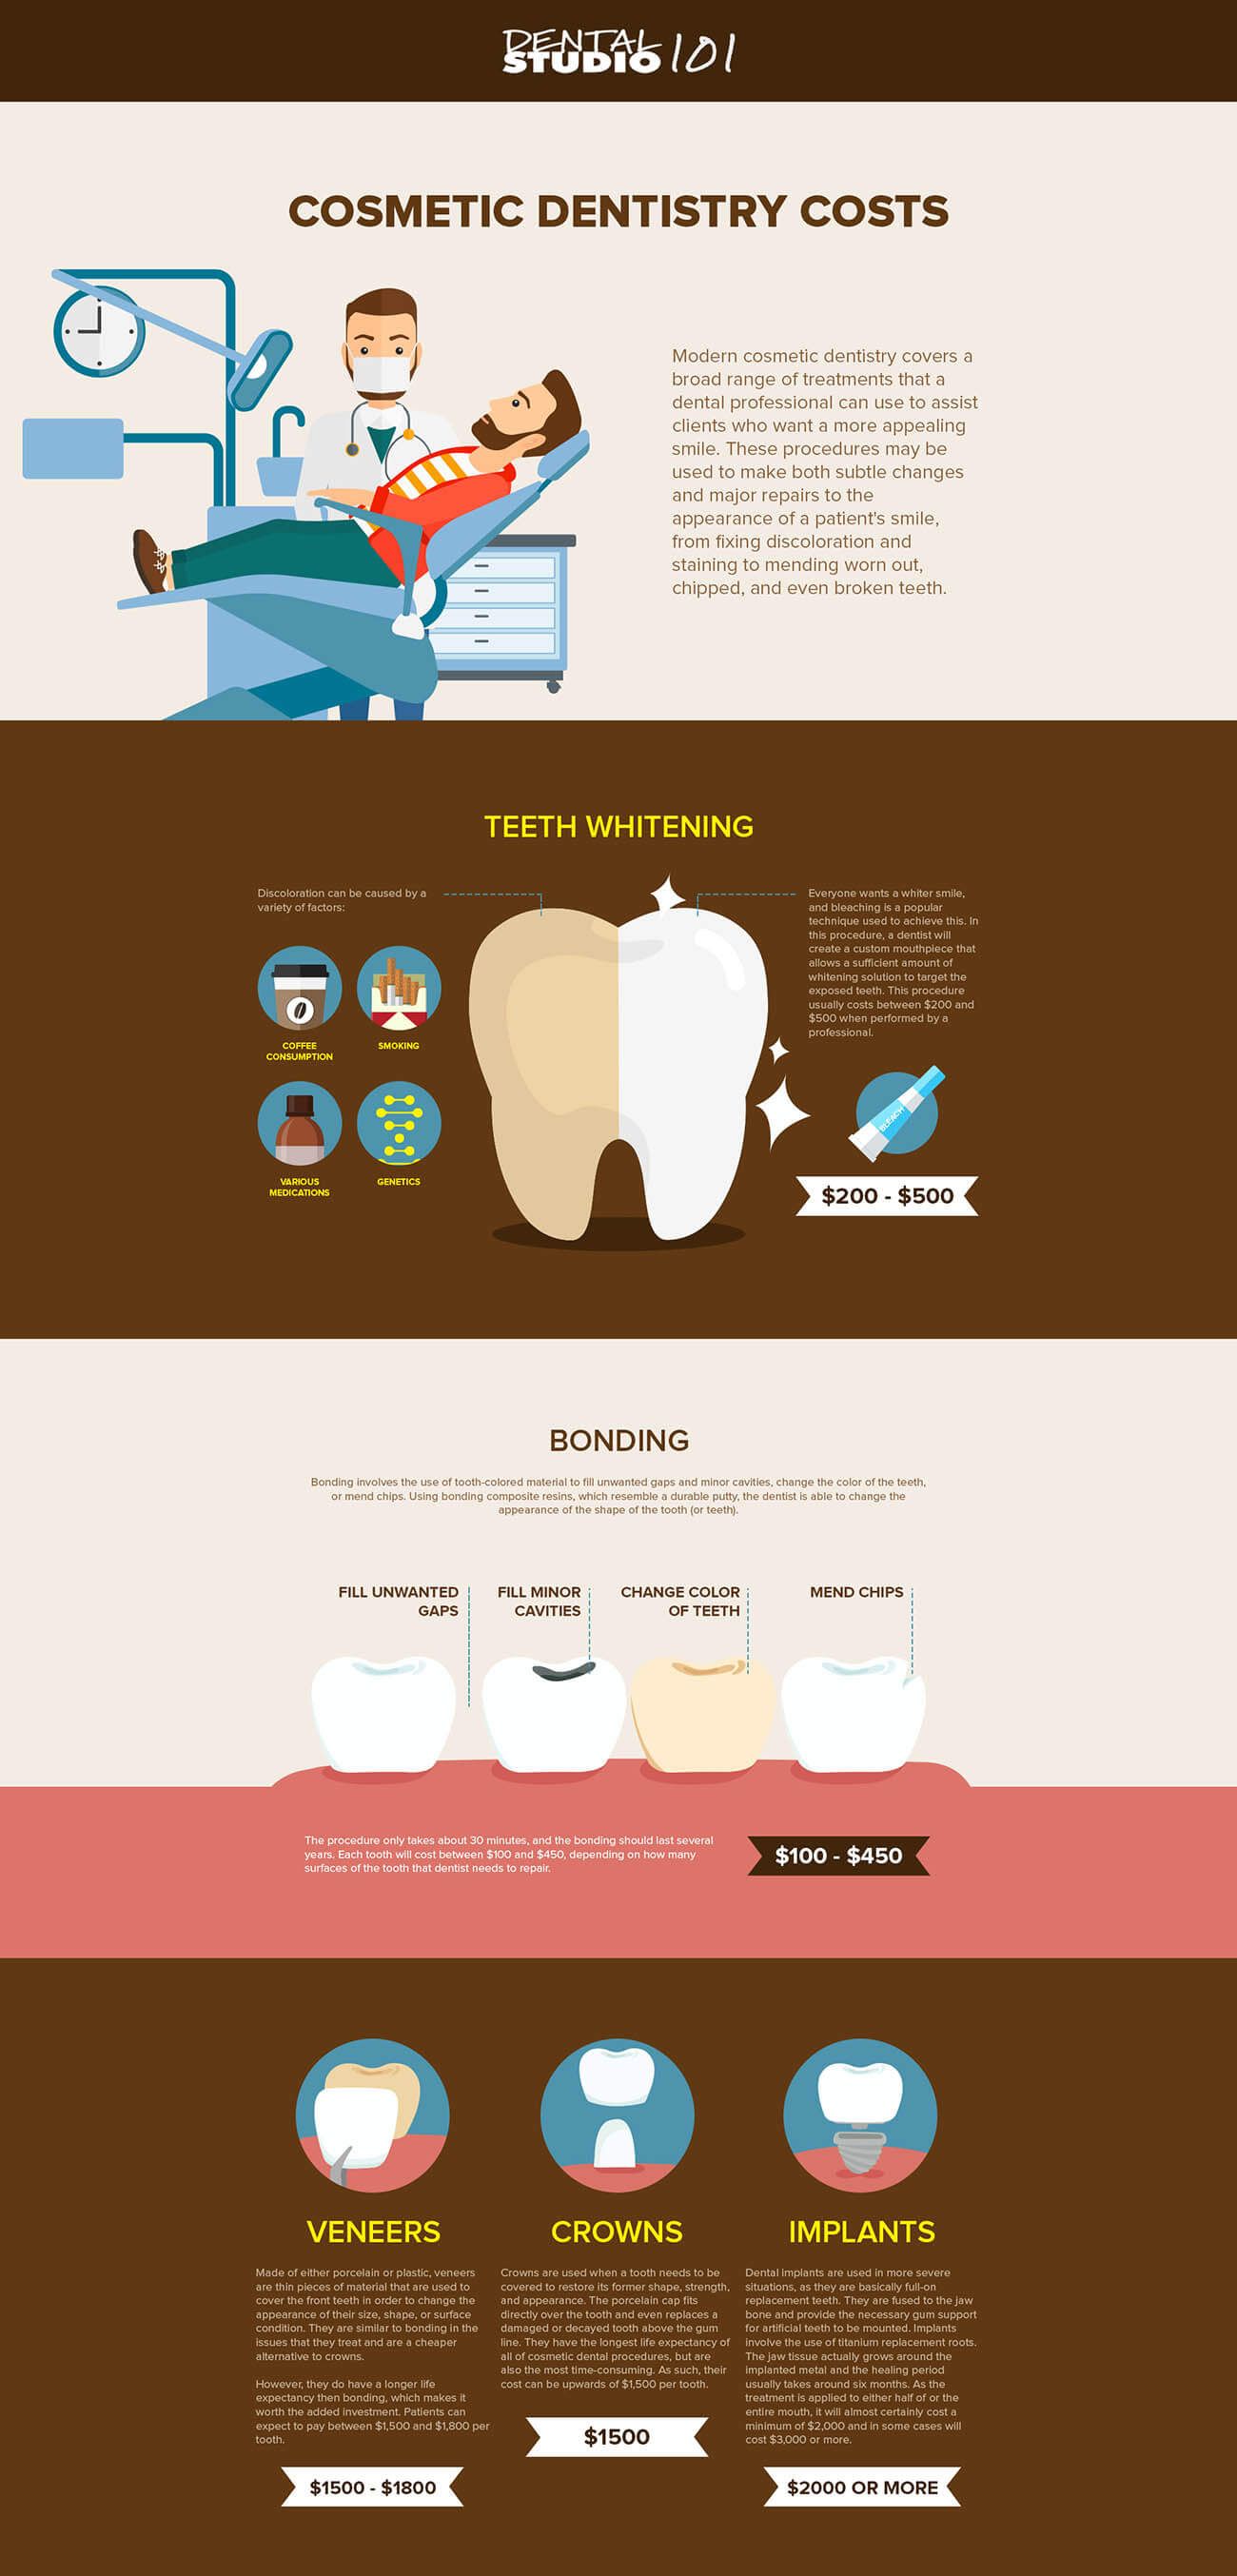 Cost of cosmetic dentistry - Dental Studio 101